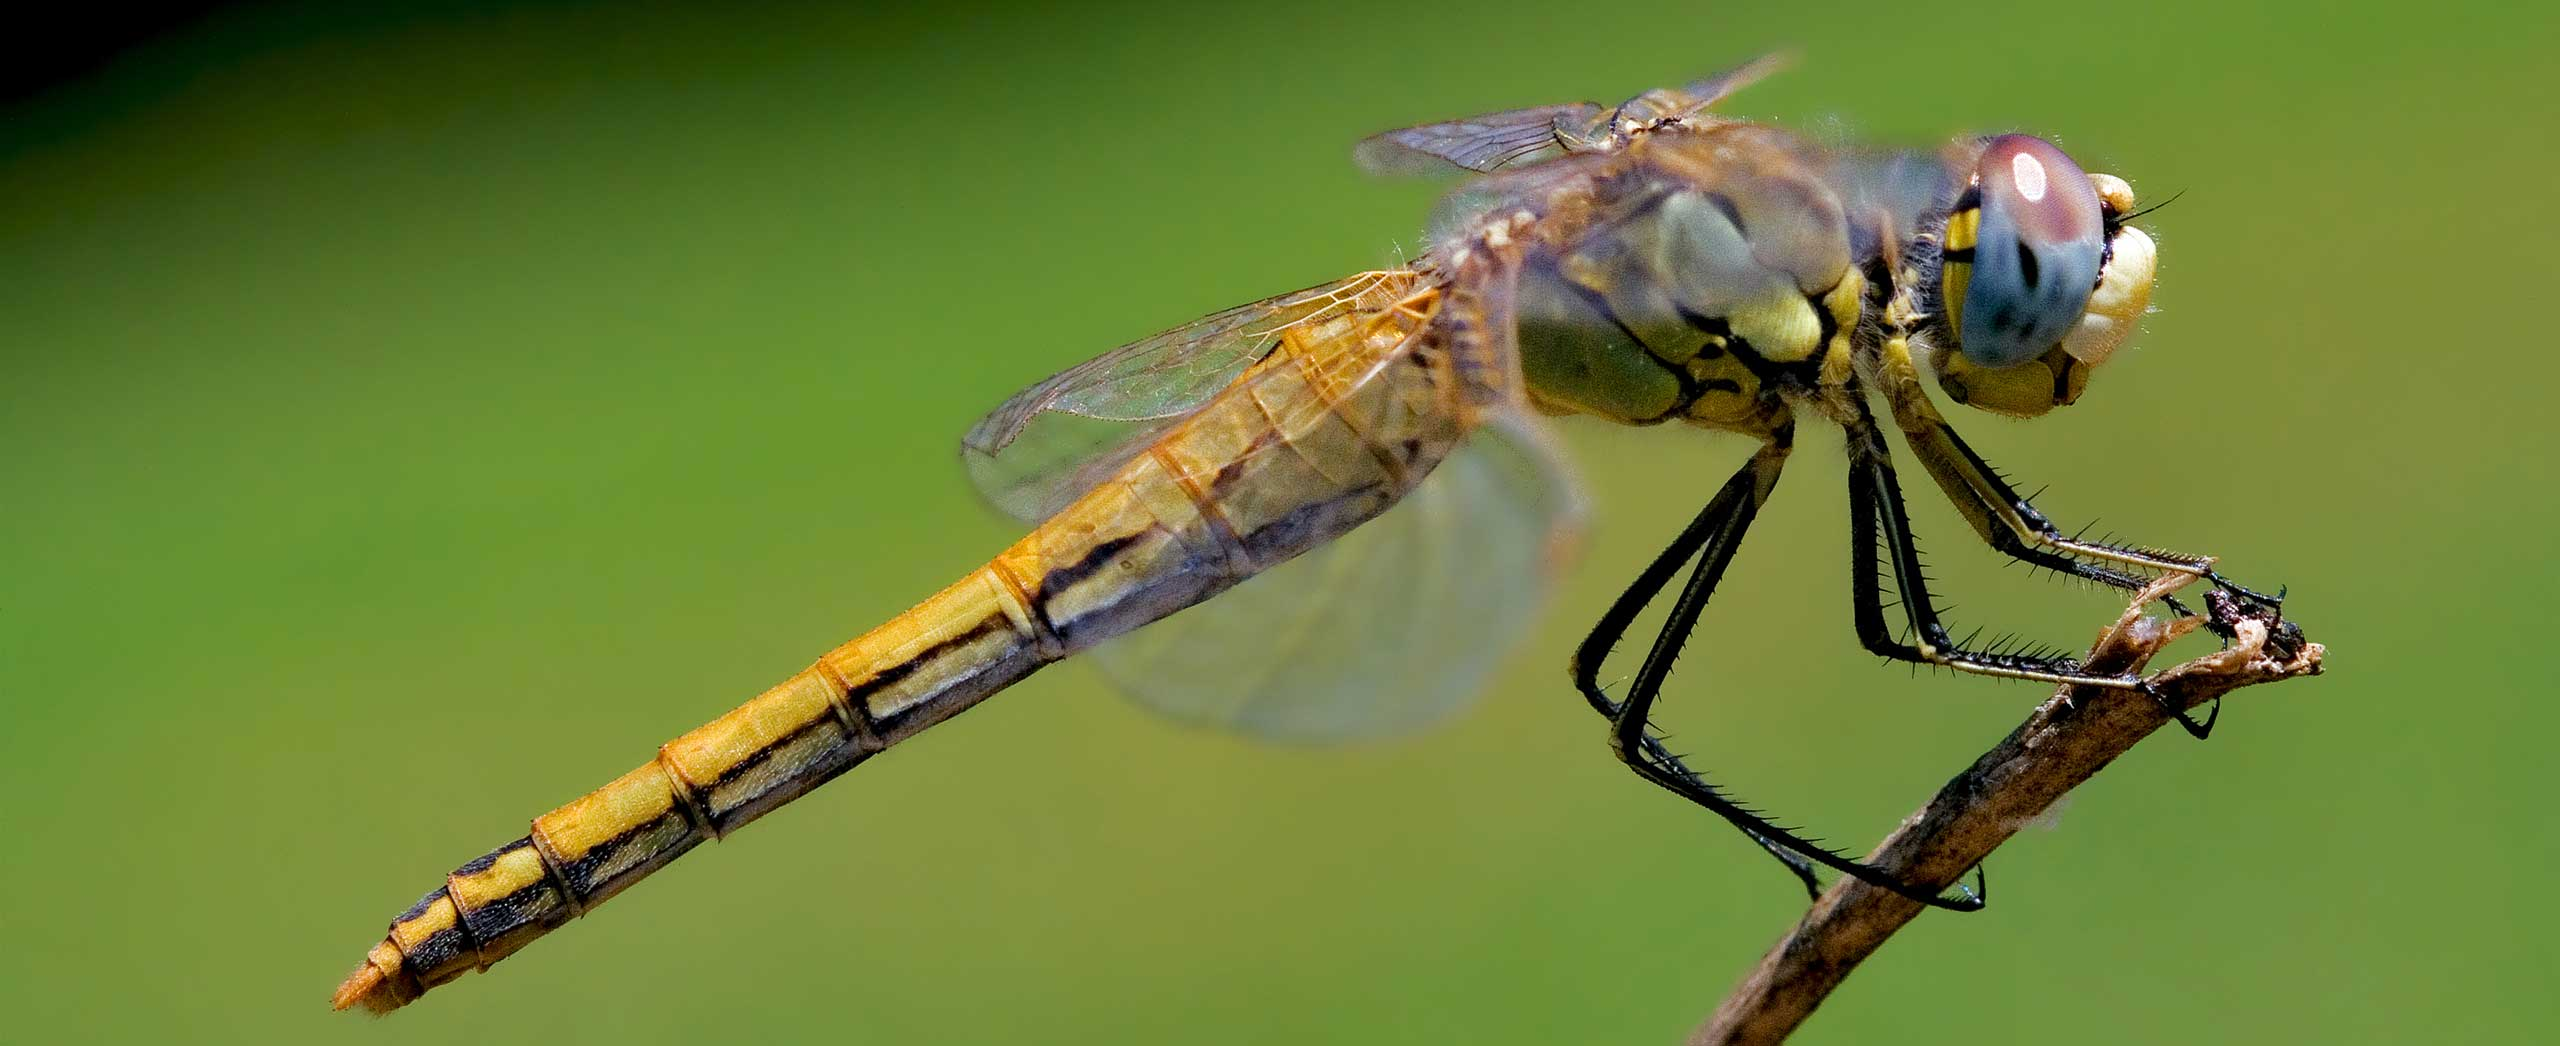 Do Dragonflies Breathe Fire? | Wonderopolis